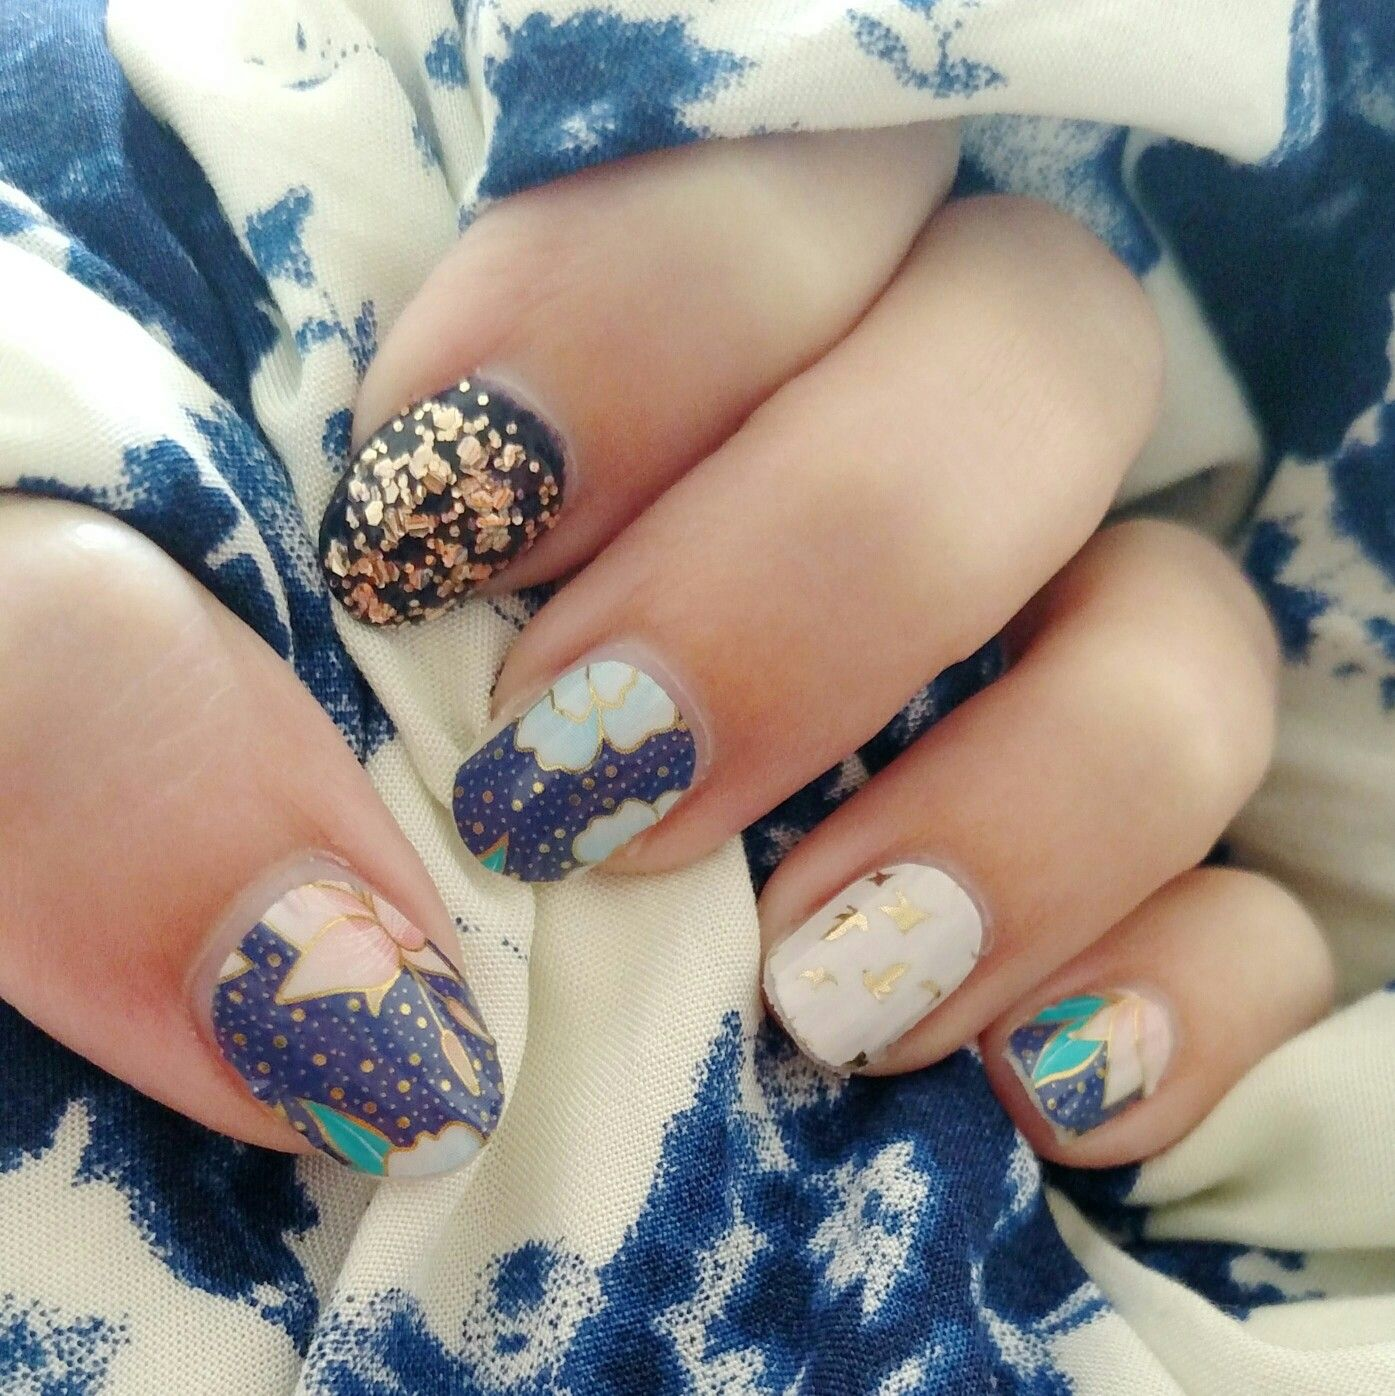 Dazzle The World wraps paired with Your Own Way wraps from the July ...